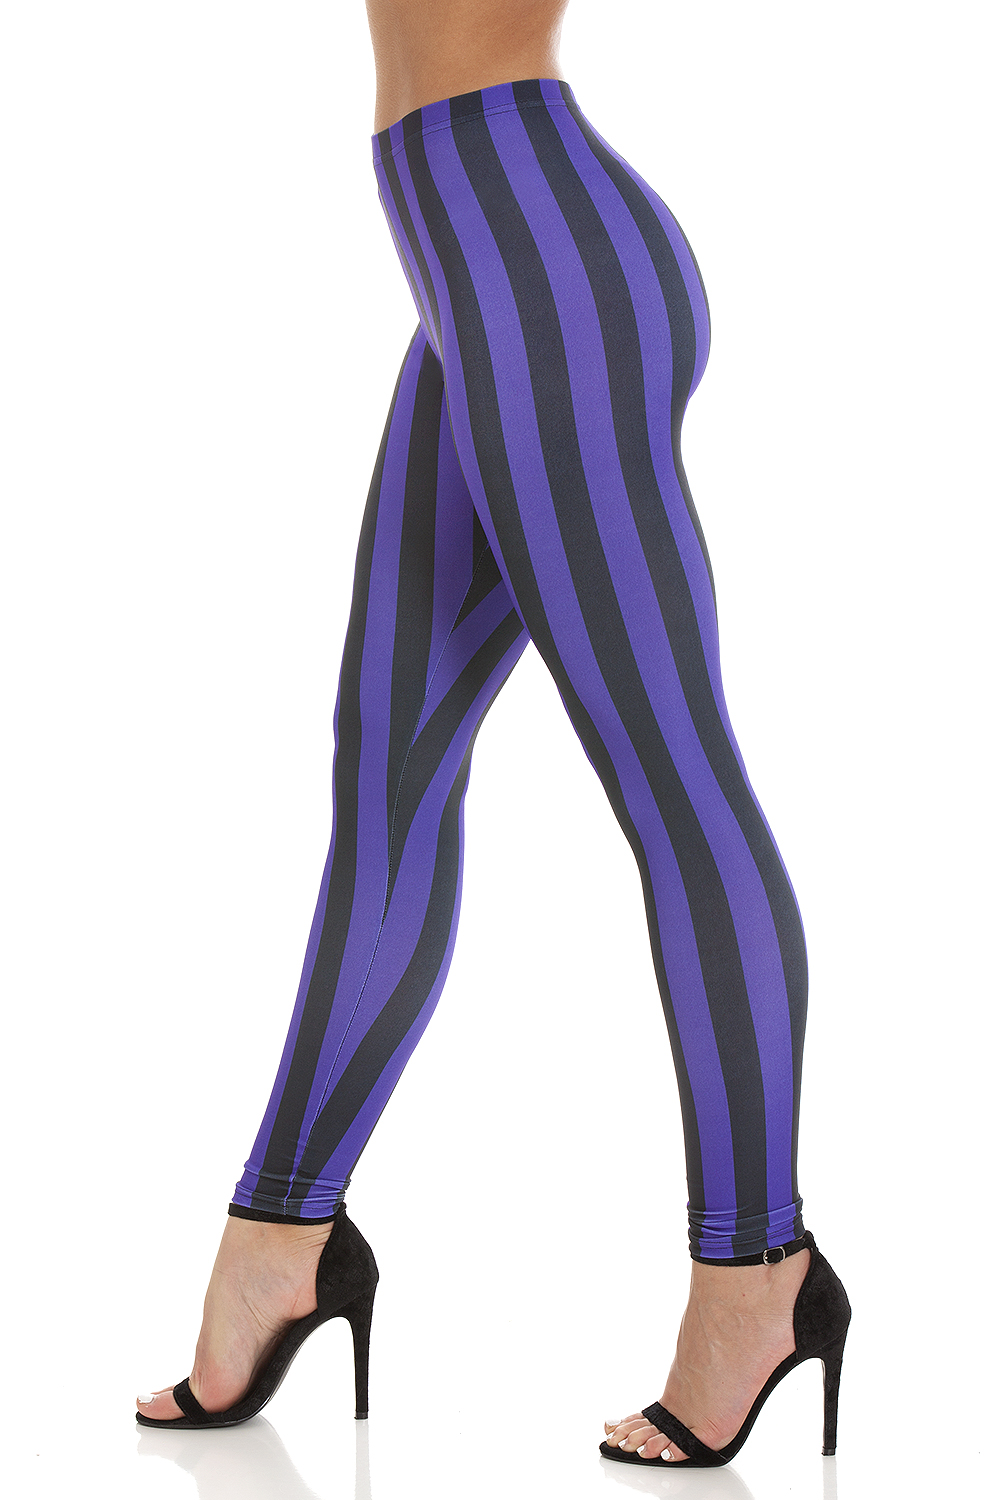 Striped Leggings Purple Black (7)